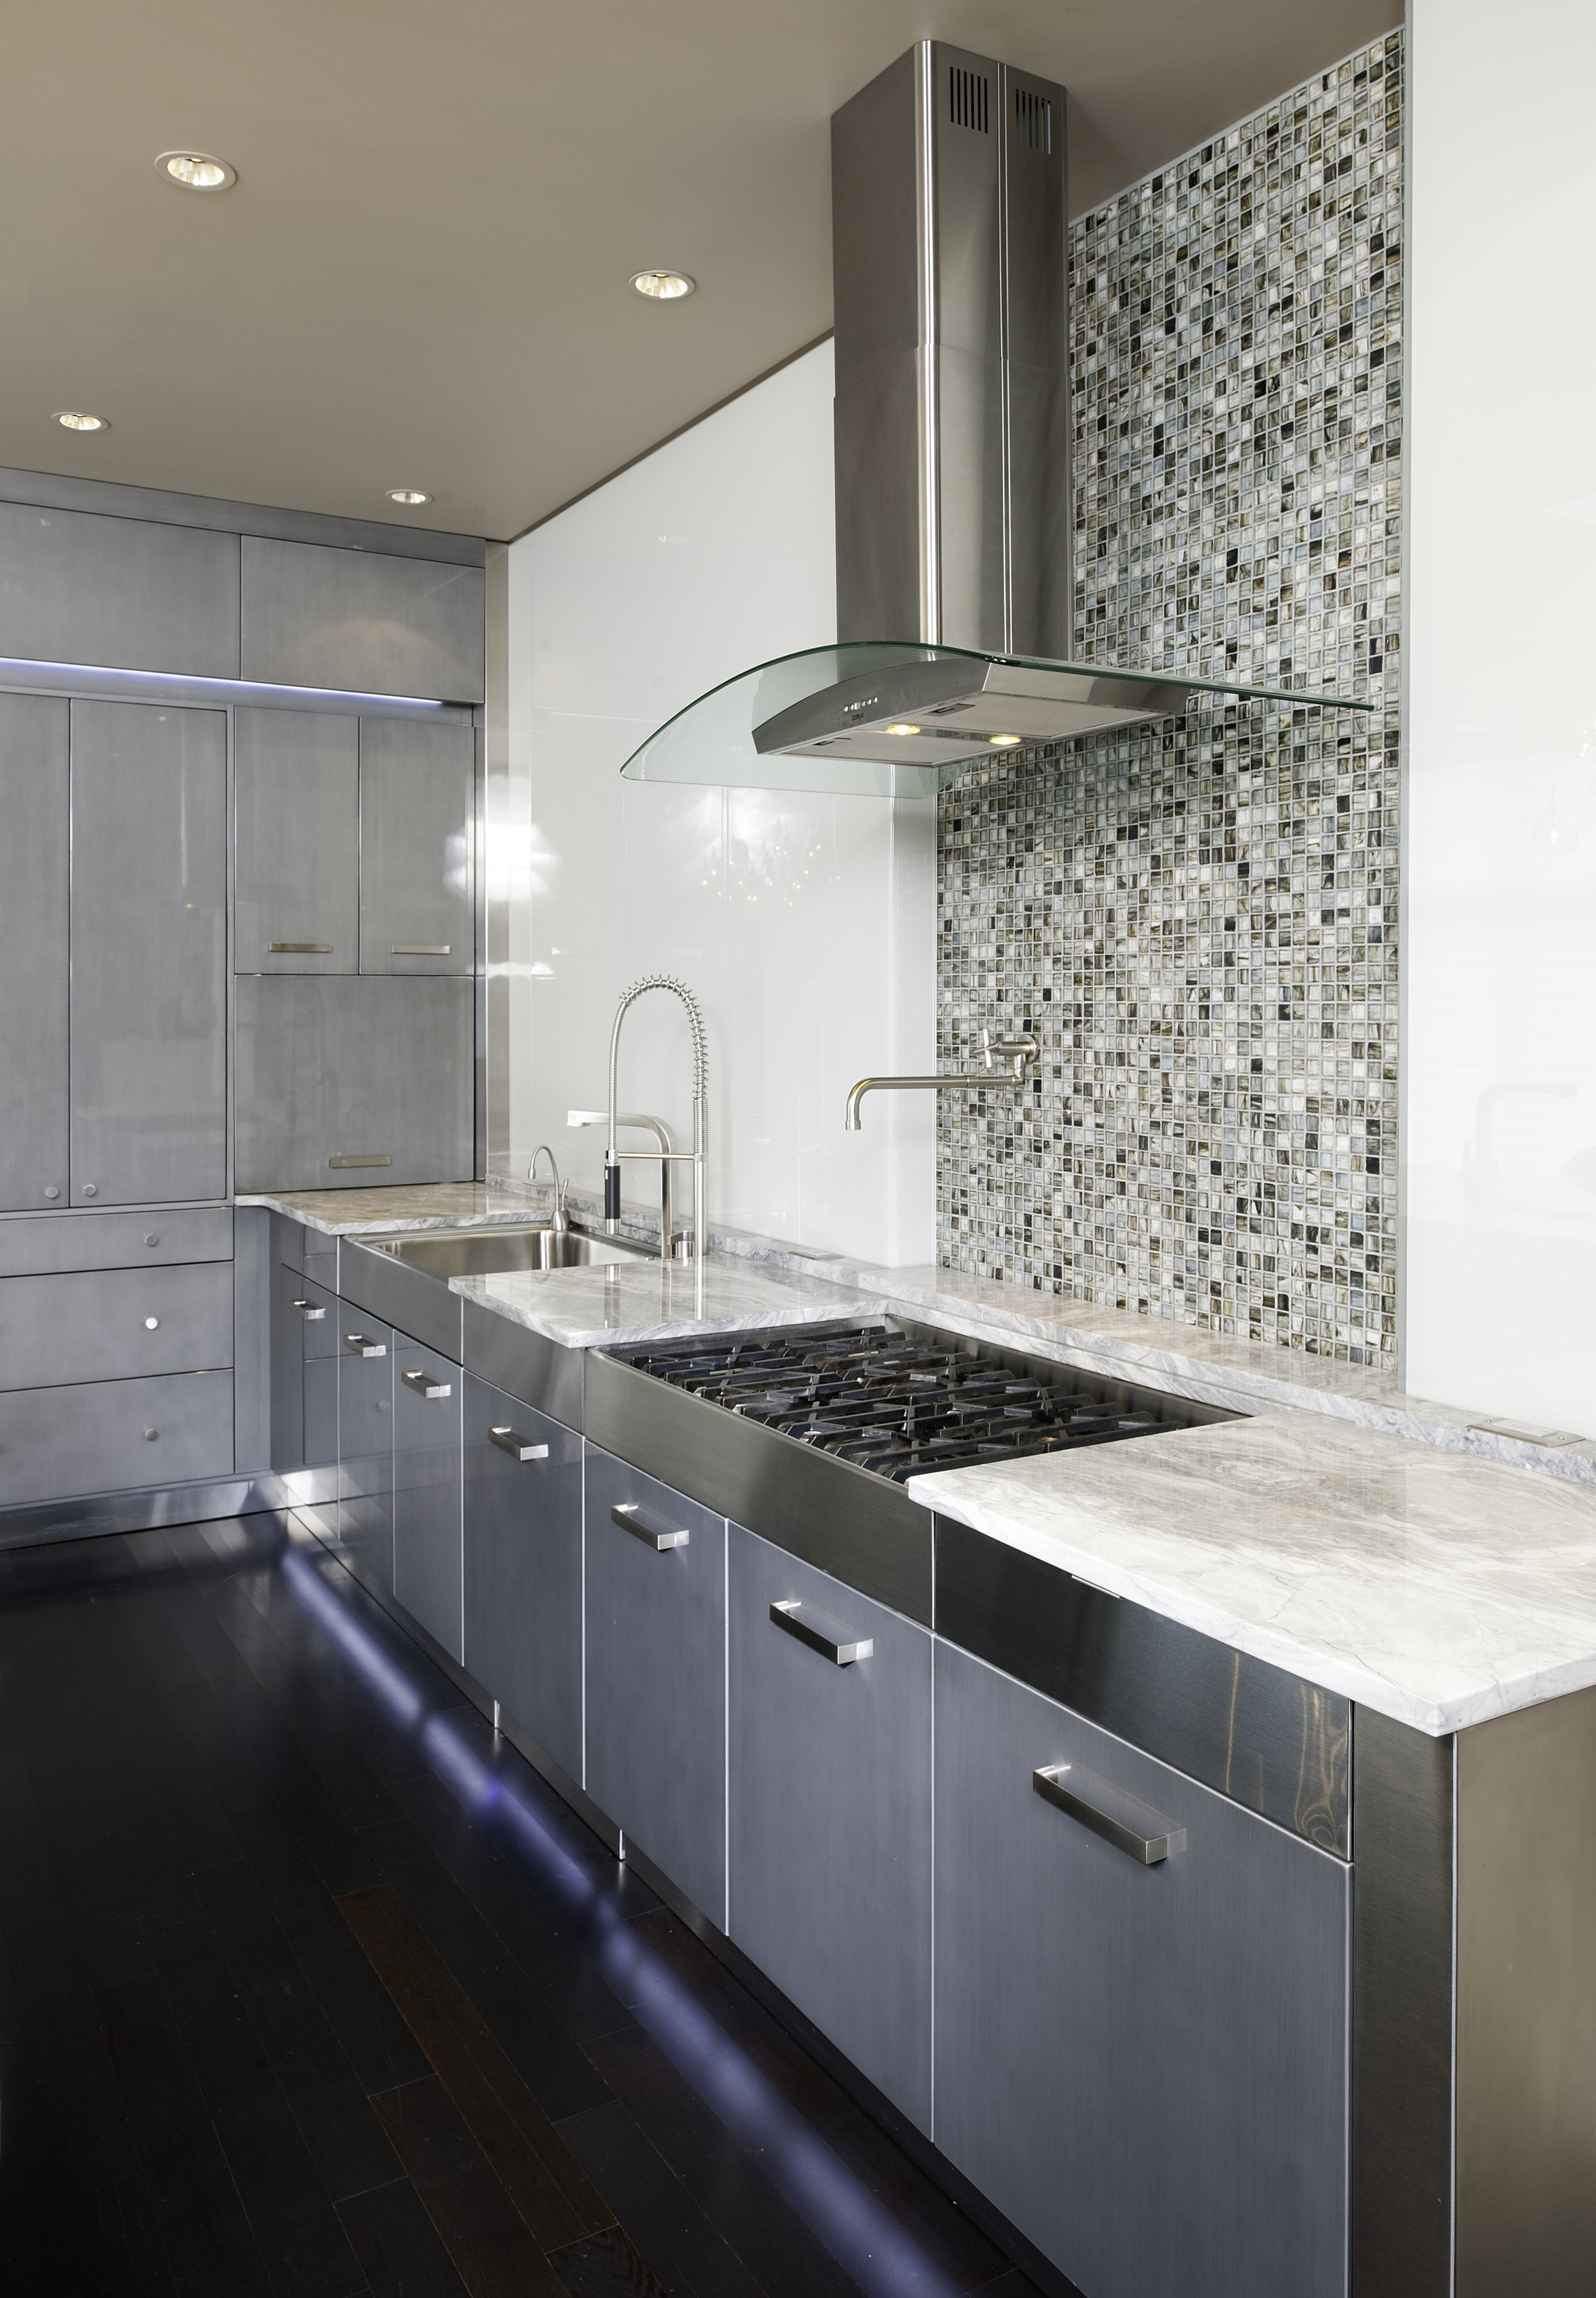 KBC_kitchen_bath_concepts_Kitchen_59.jpg